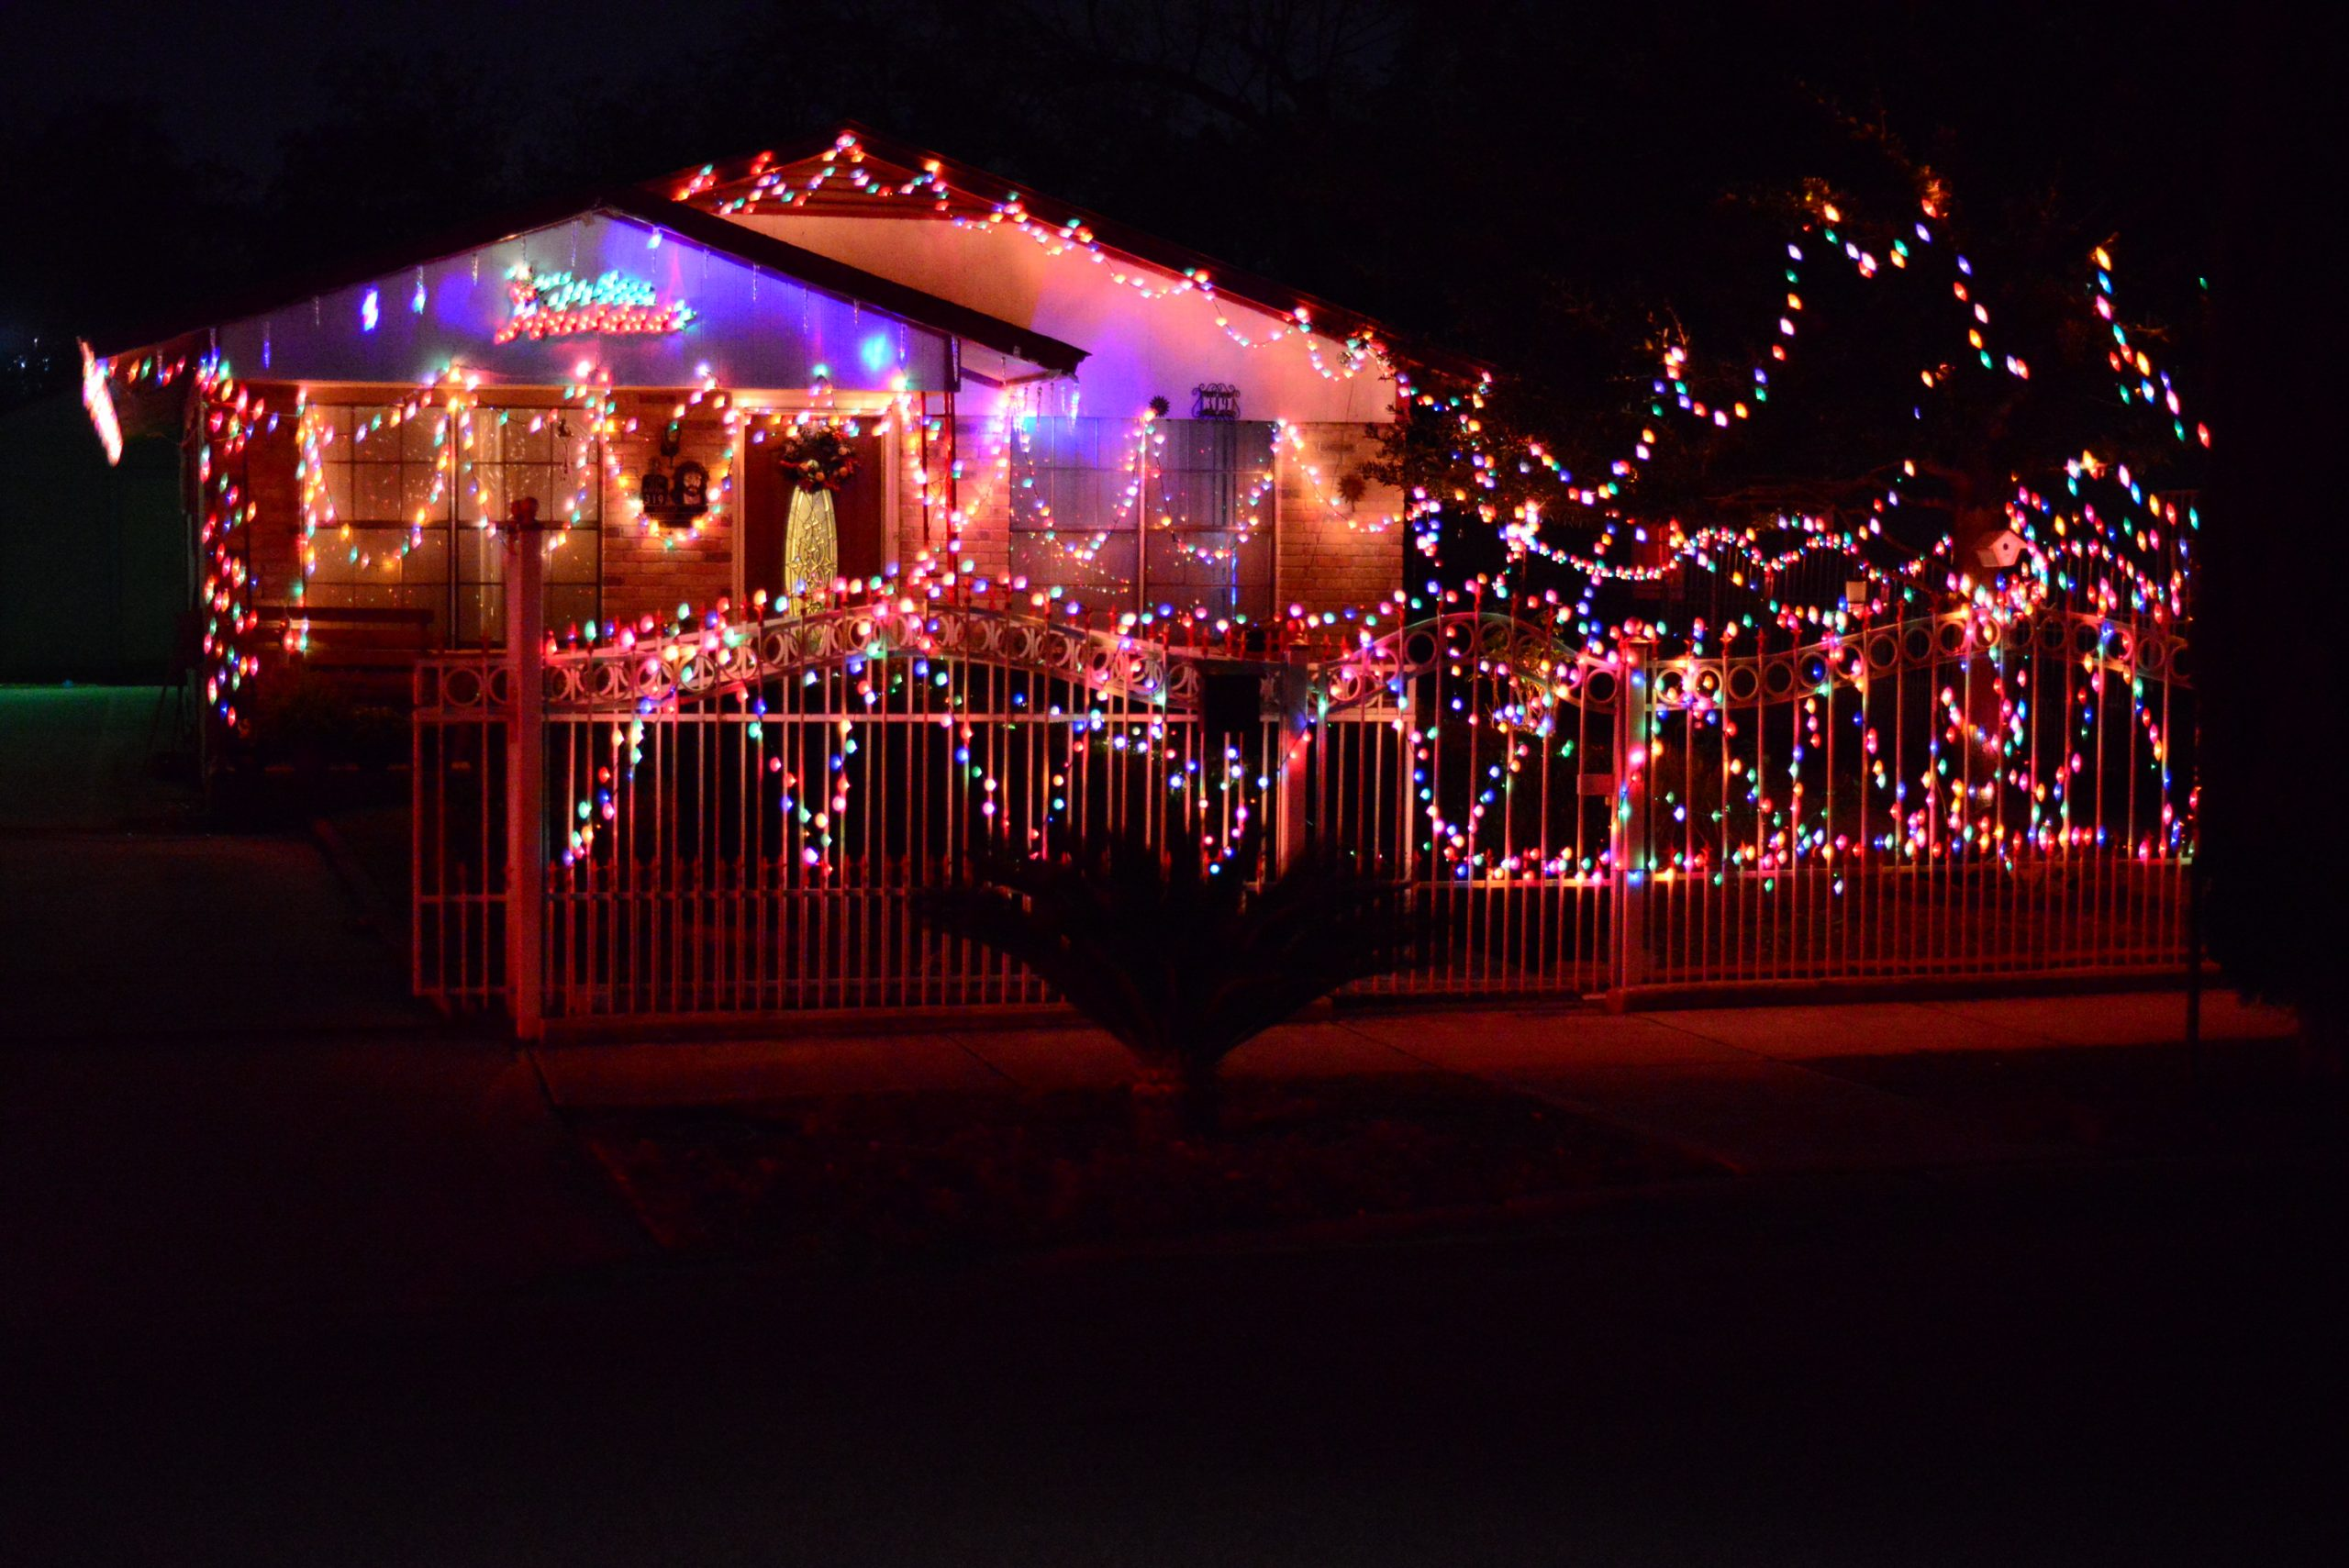 A San Antonio home decorated for the 2013 holiday season. Photo by Page Graham